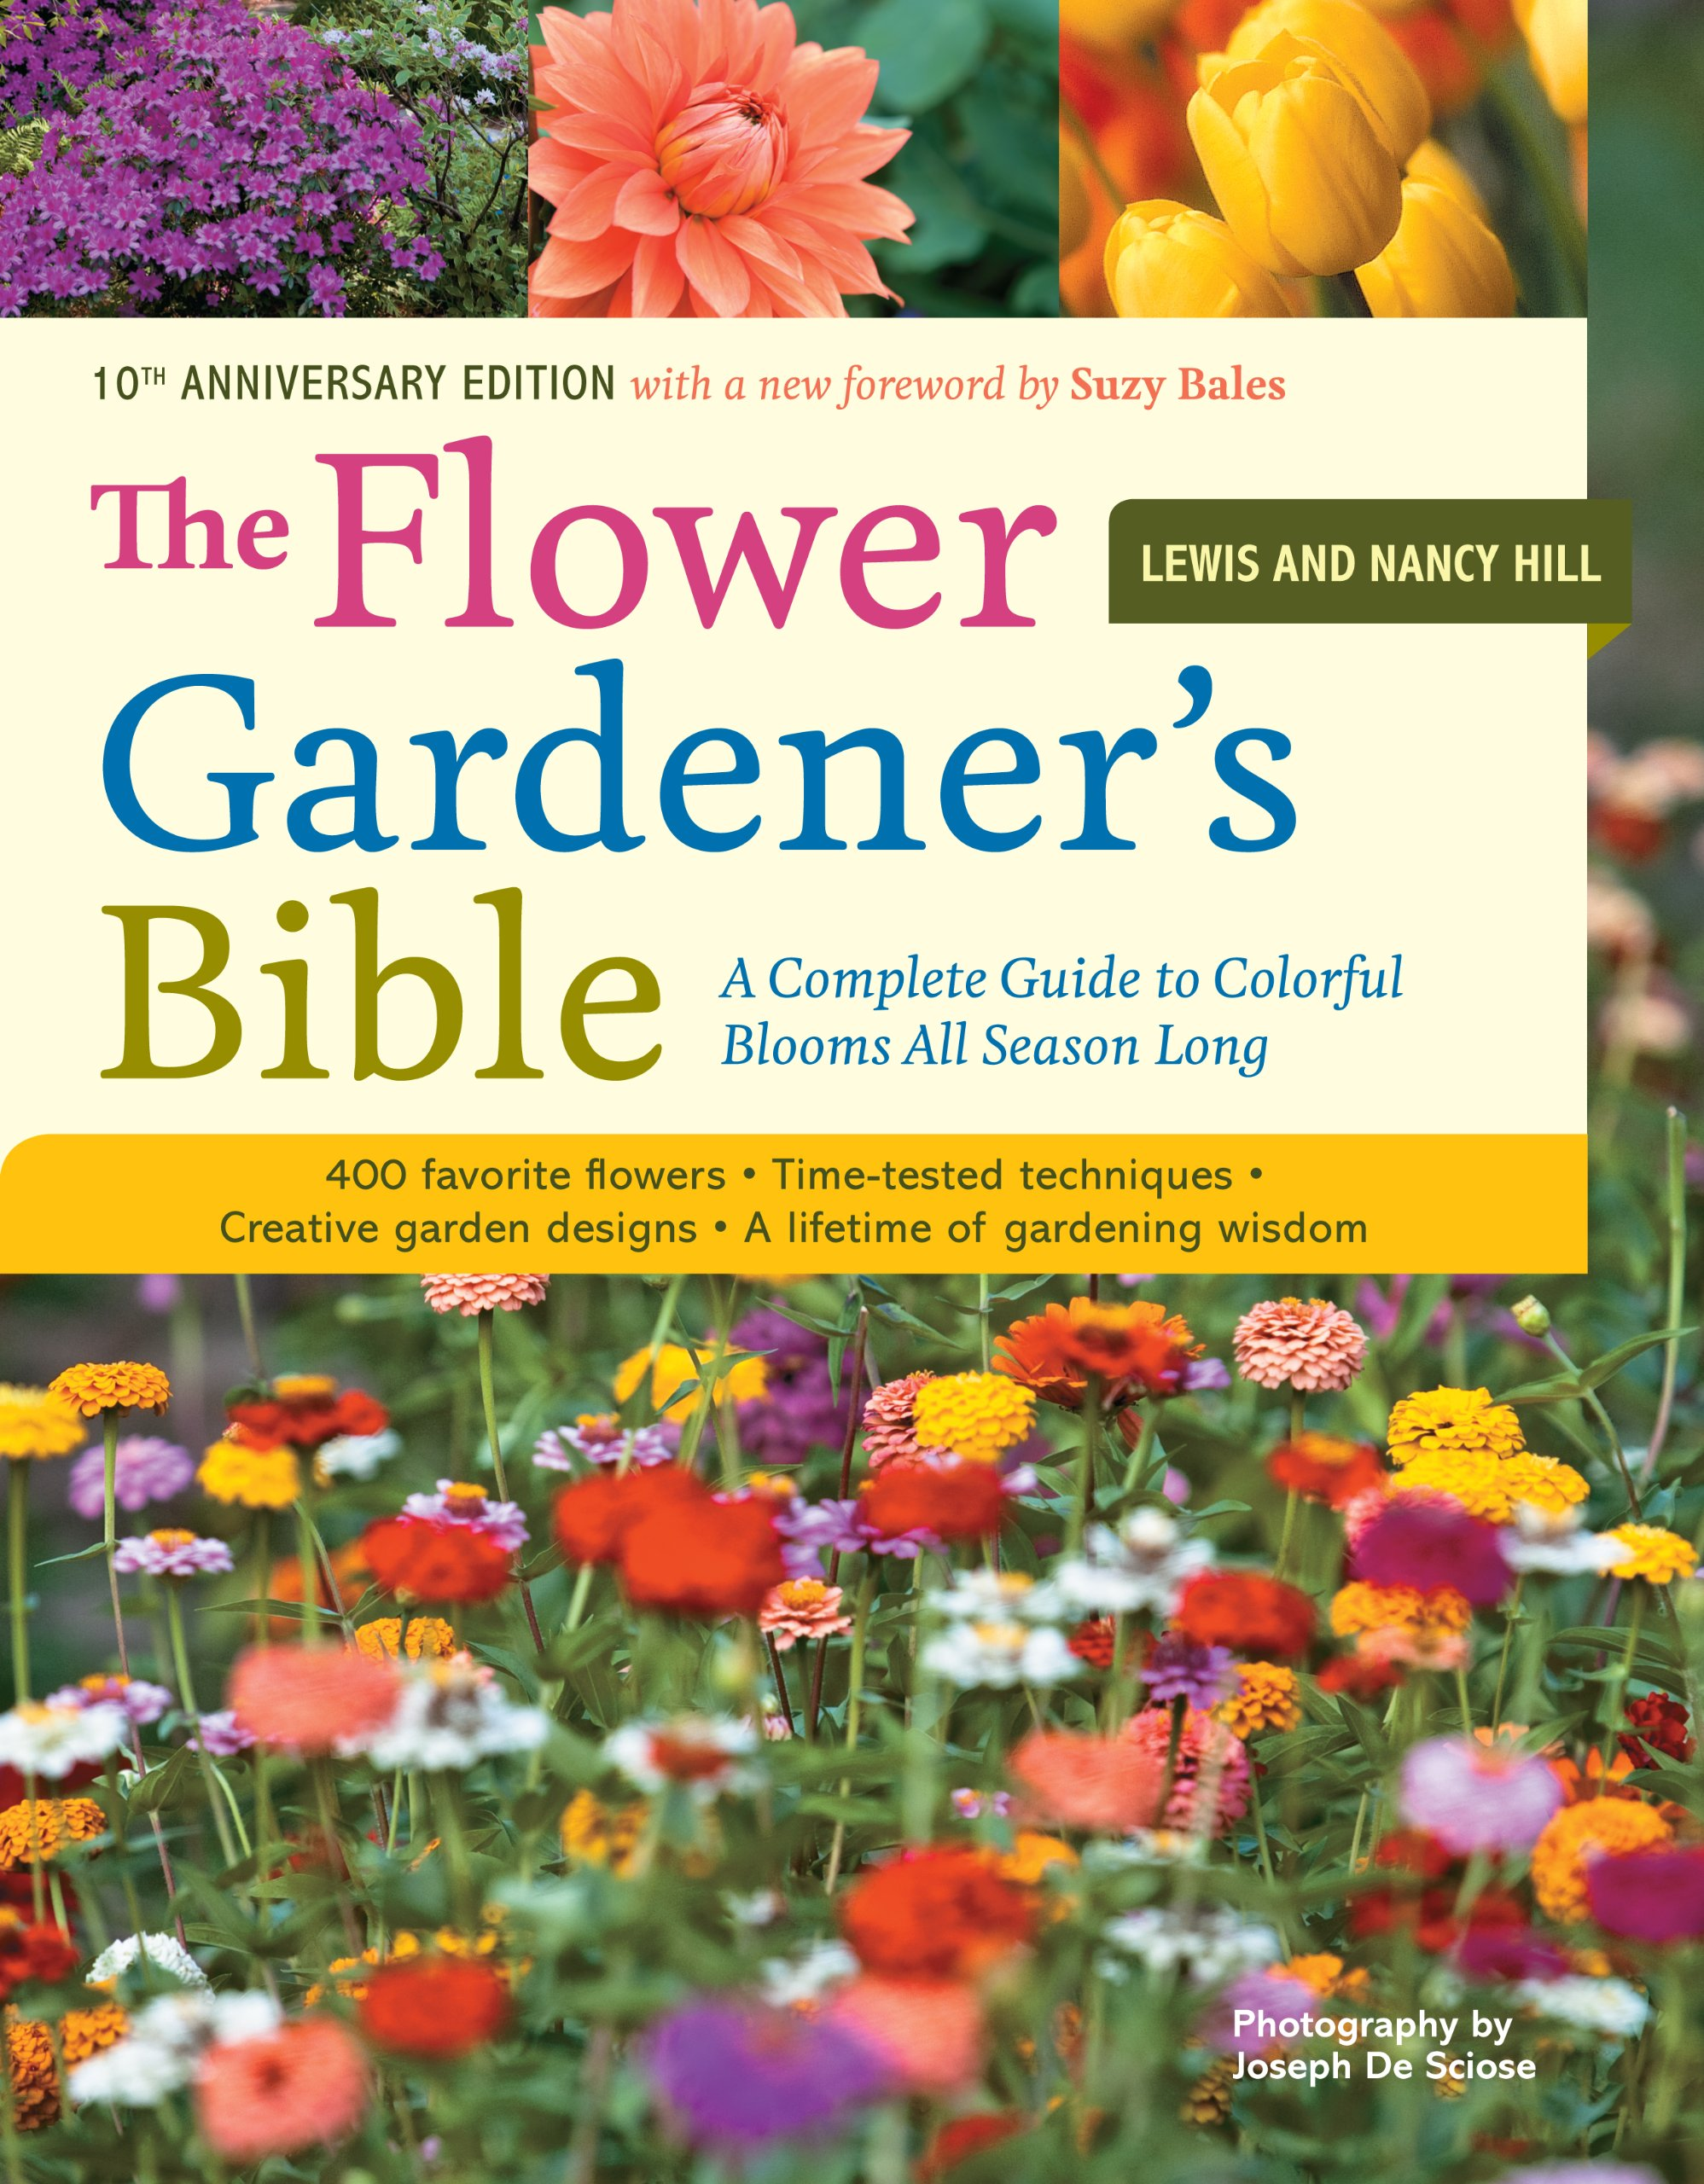 Attrayant The Flower Gardeneru0027s Bible: A Complete Guide To Colorful Blooms All Season  Long: 400 Favorite Flowers, Time Tested Techniques, Creative Garden  Designs, ...